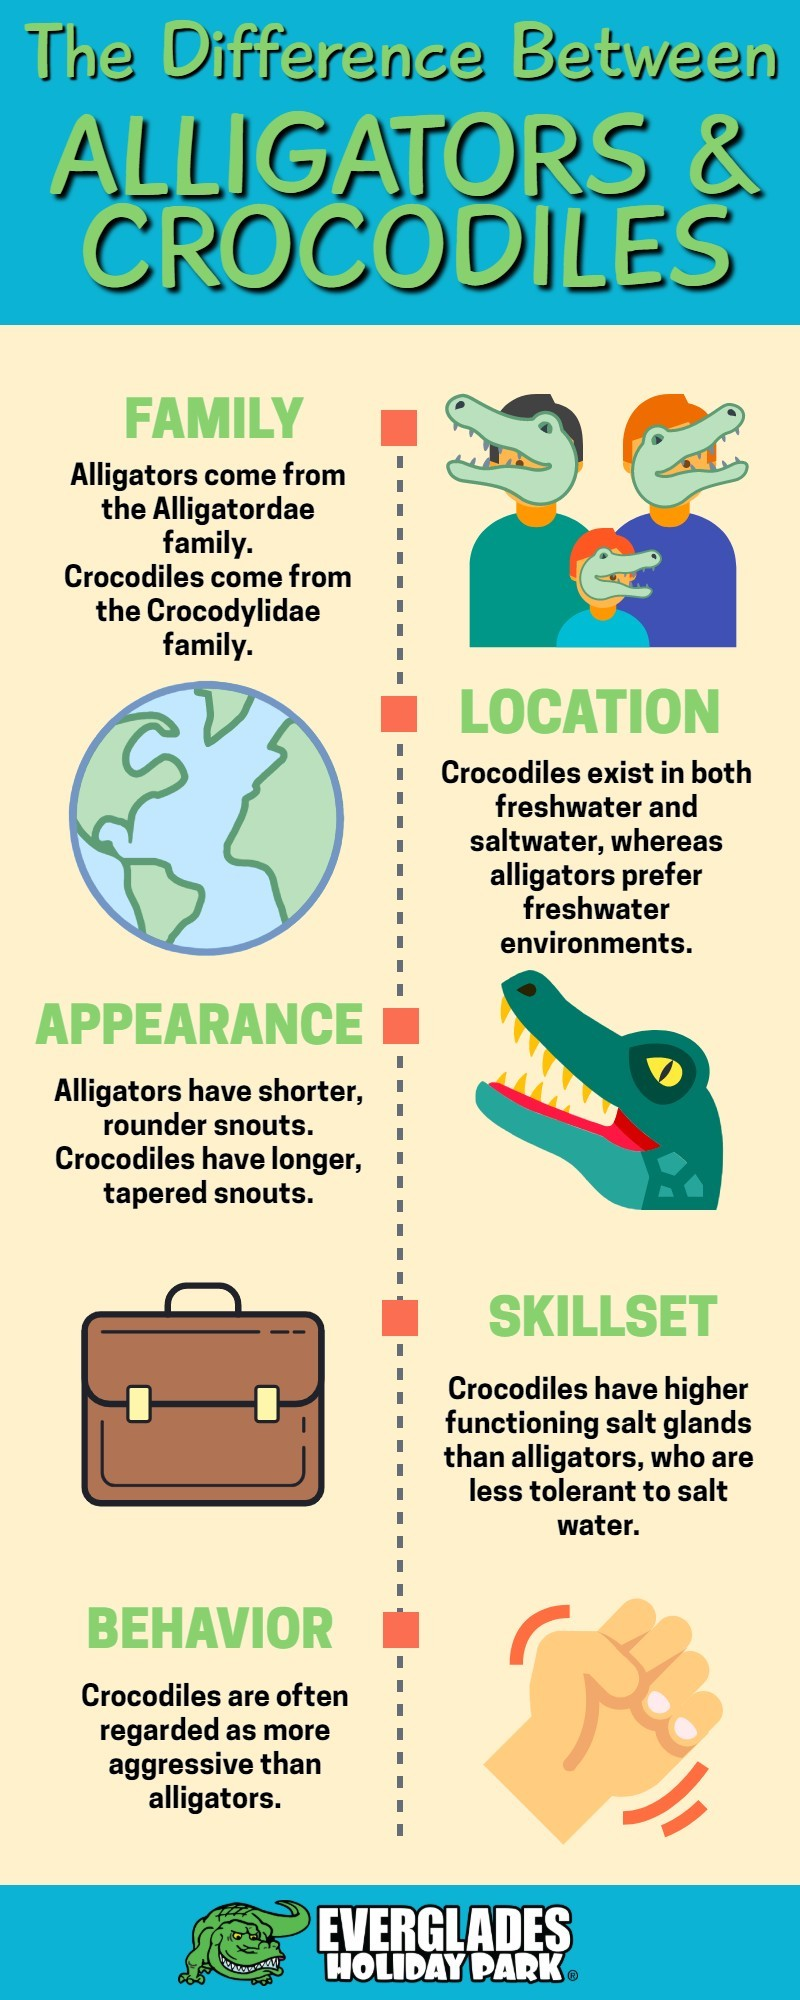 difference between alligators and crocodiles - Infographic